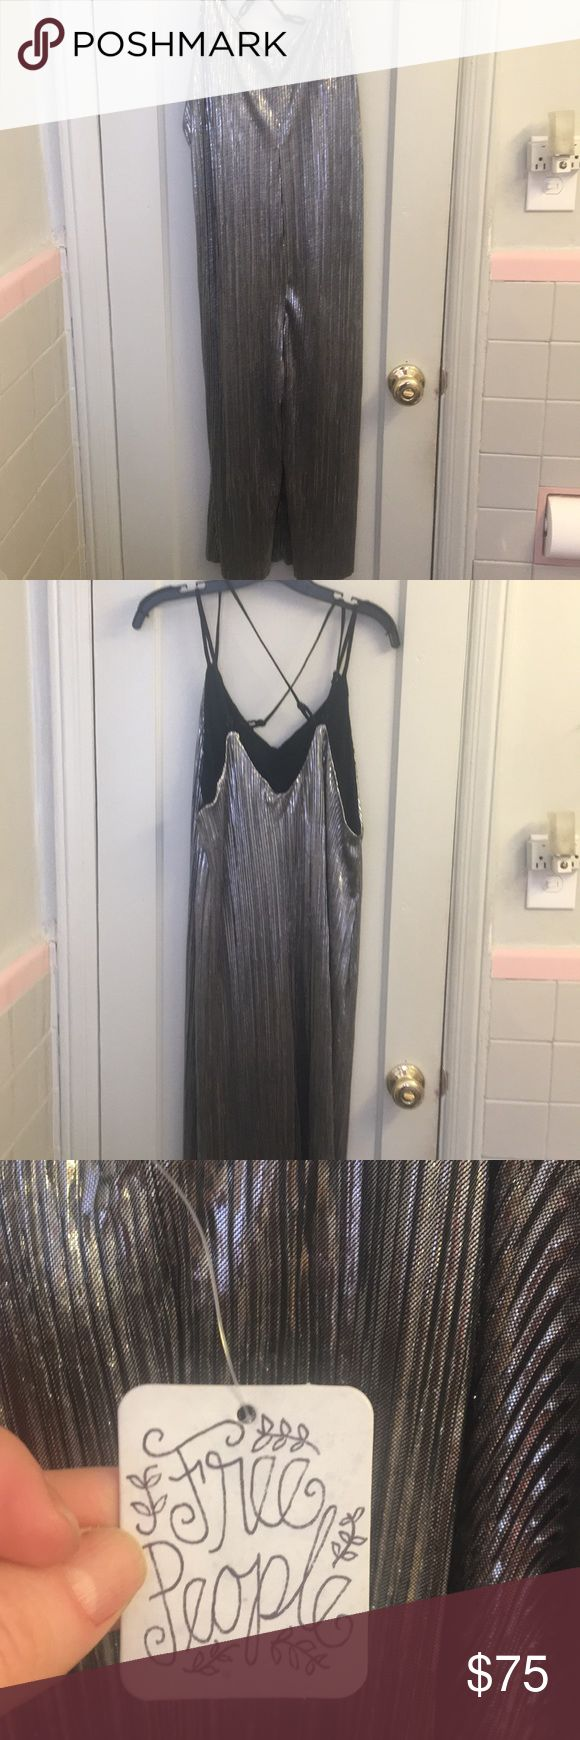 Free People Silver Jumpsuit Fun sexy jumpsuit that can be worn alone or layered under a turtle neck! Gives major glam / Studio 54 vibes Free People Other